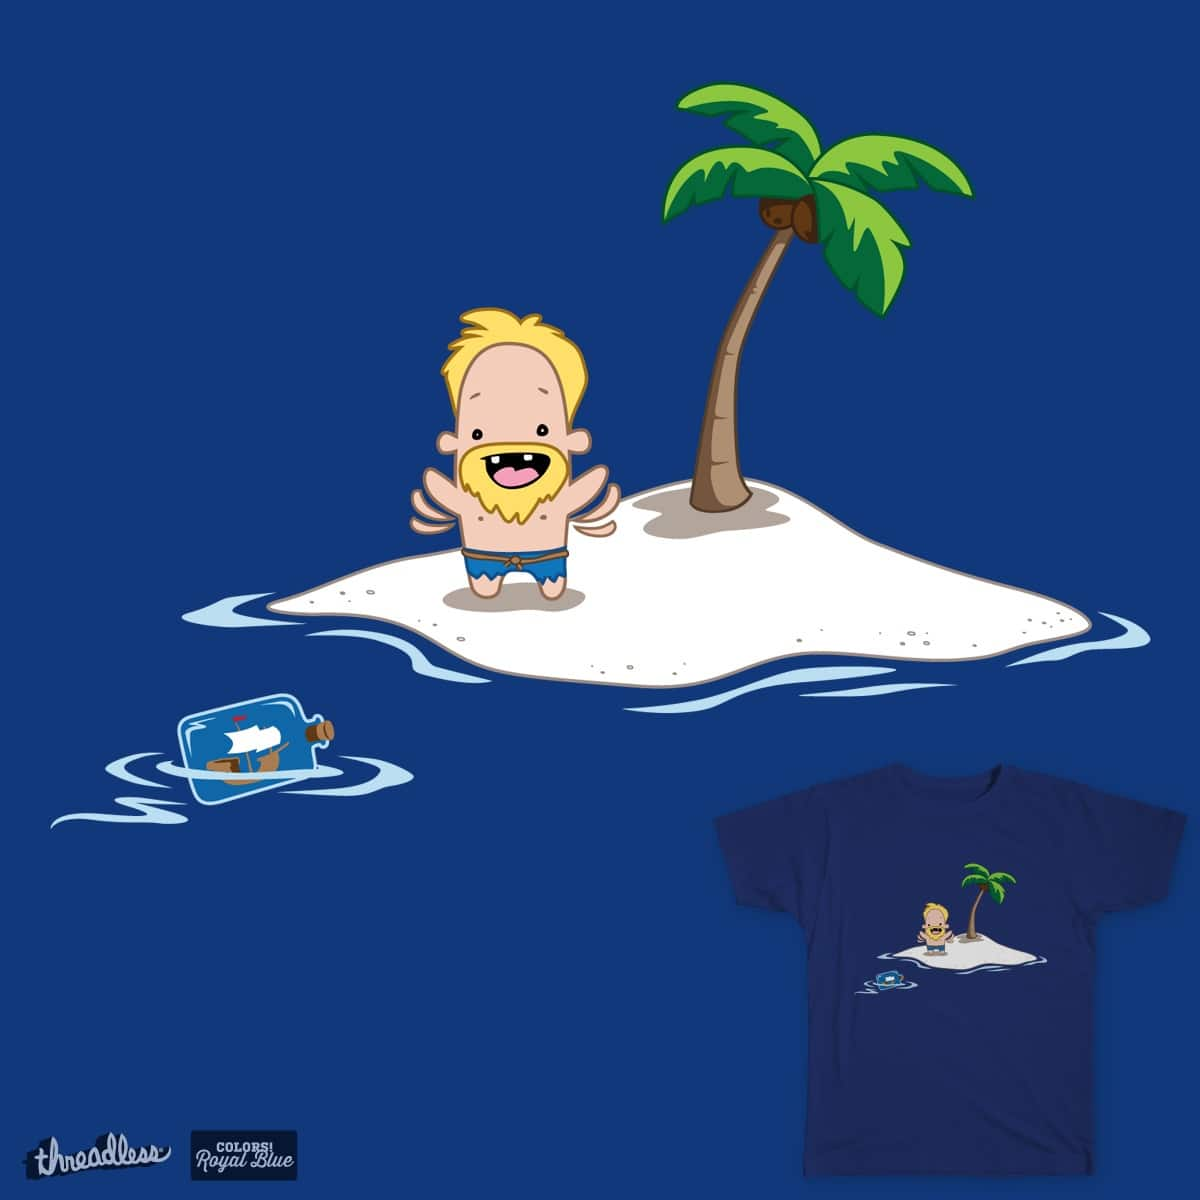 Rescued? by lyon.kevin on Threadless